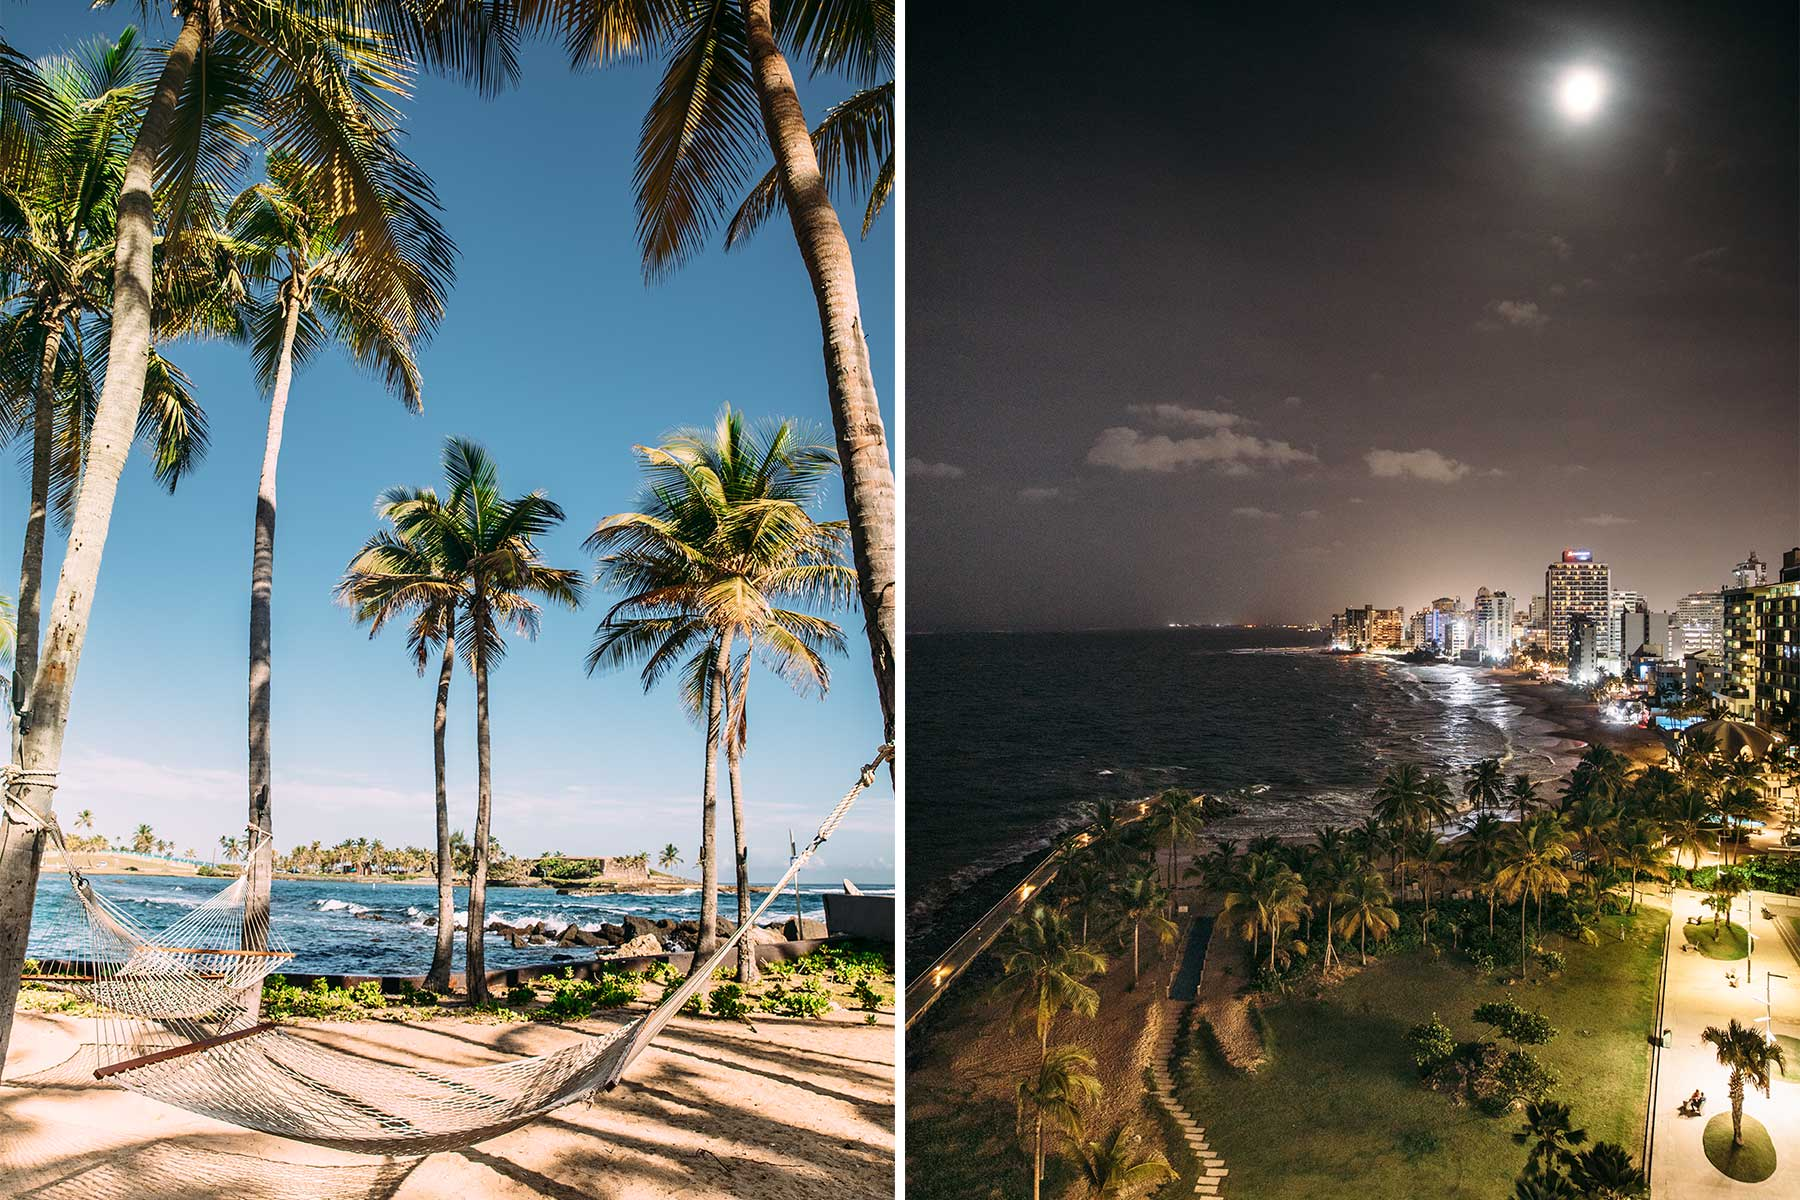 Two photos from Puerto Rico. One shows a hammock at the beach at the Hilton Caribe hotel, and the other shows a night view of San Juan.